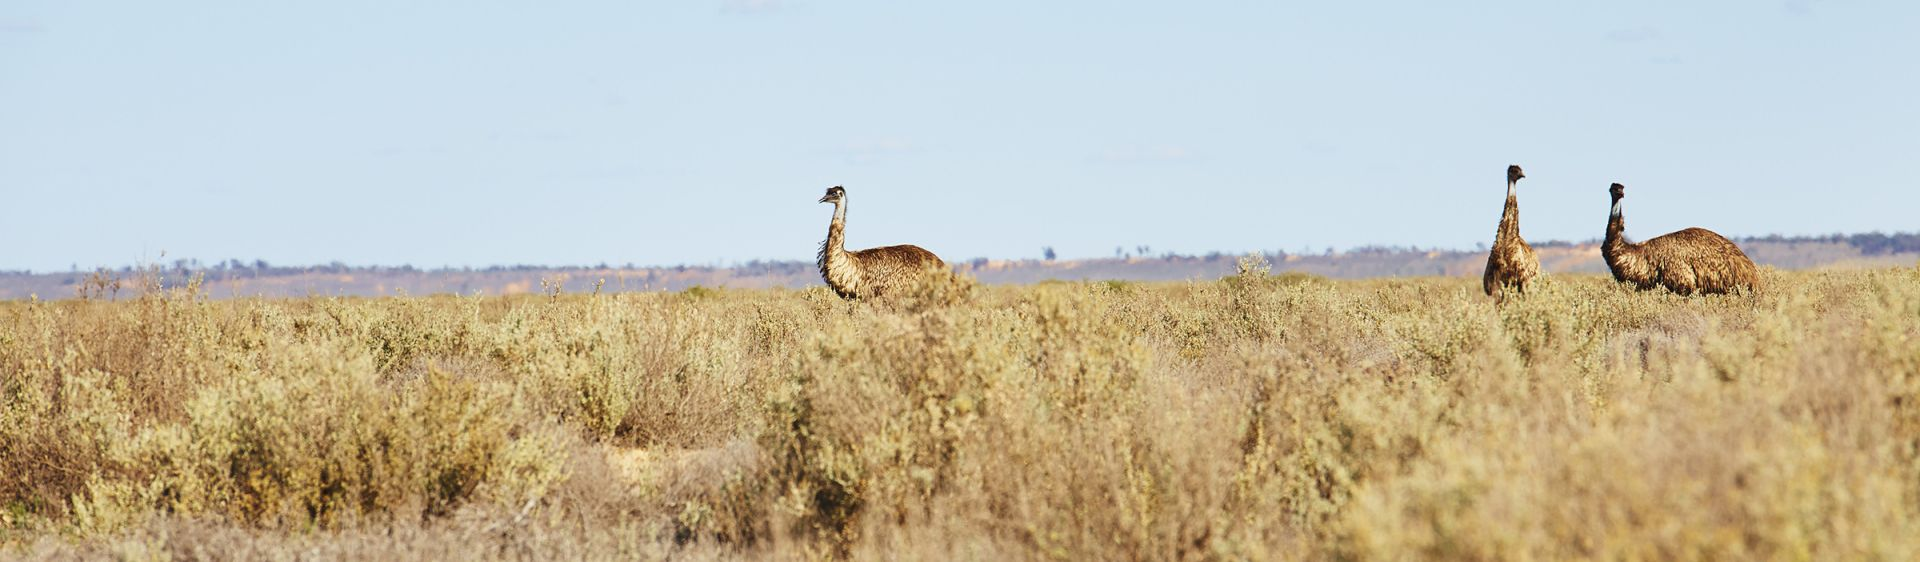 Nature in the Outback - Emus in Mungo National Park